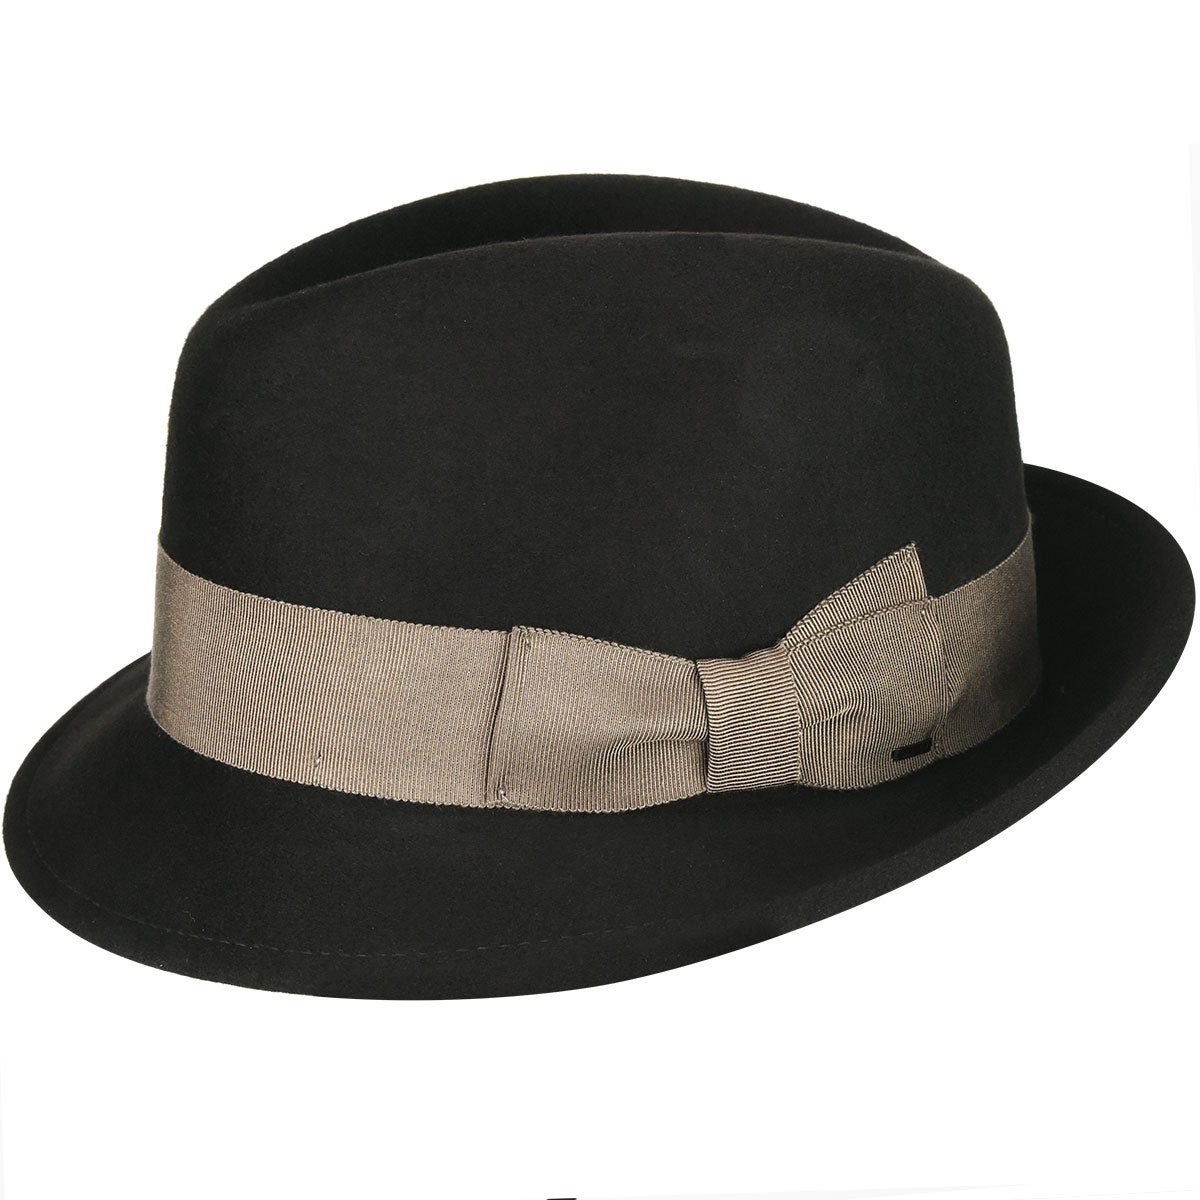 1930s Men's Fashion Guide- What Did Men Wear? Riff Fedora $133.00 AT vintagedancer.com